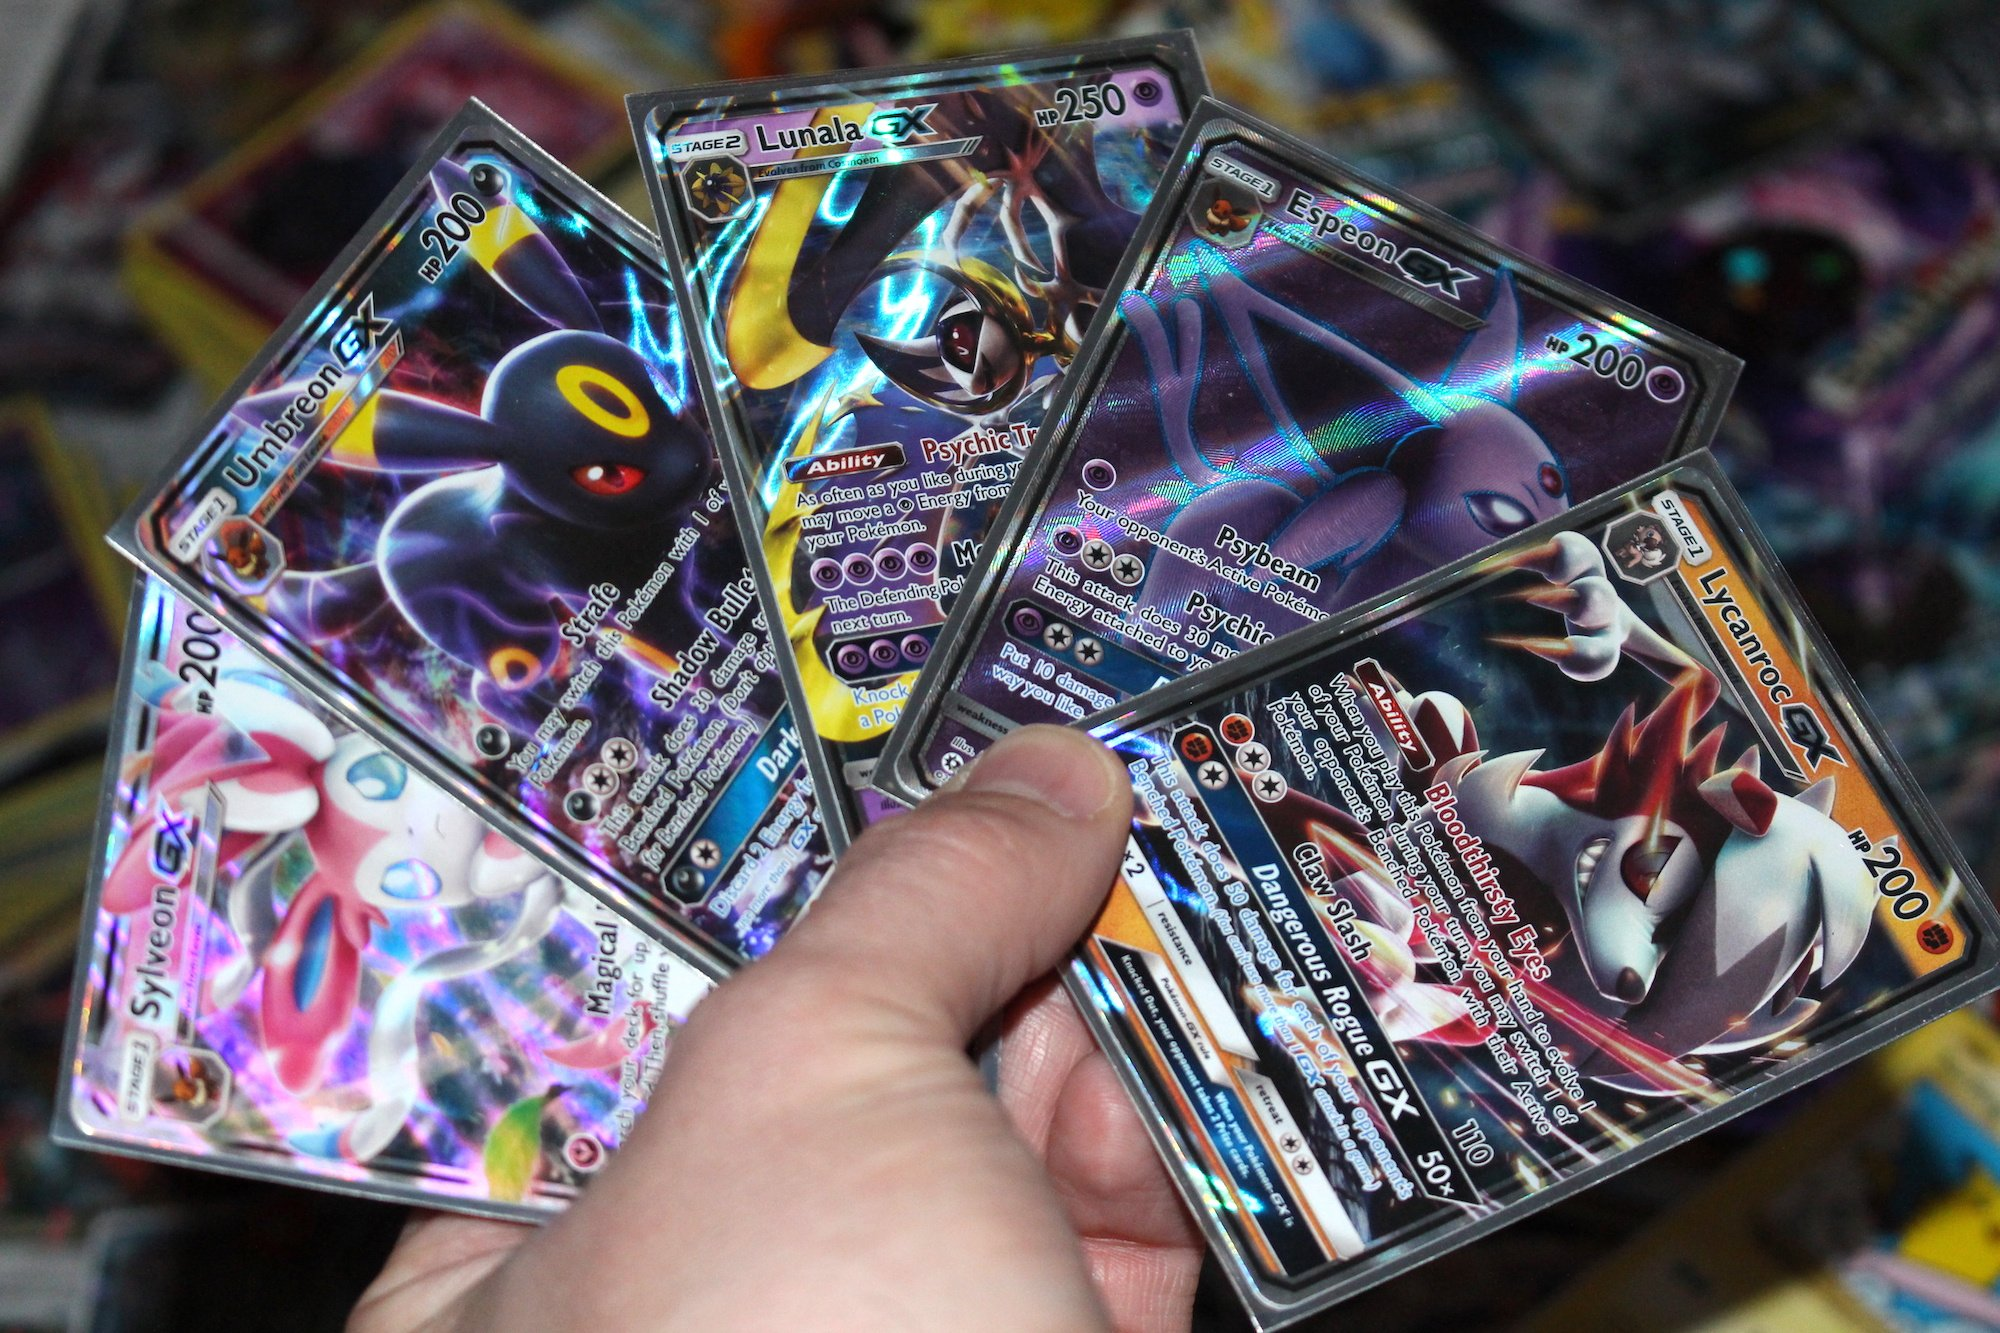 Getting Started With The Pokémon Trading Card Game - Guide - Nintendo Life